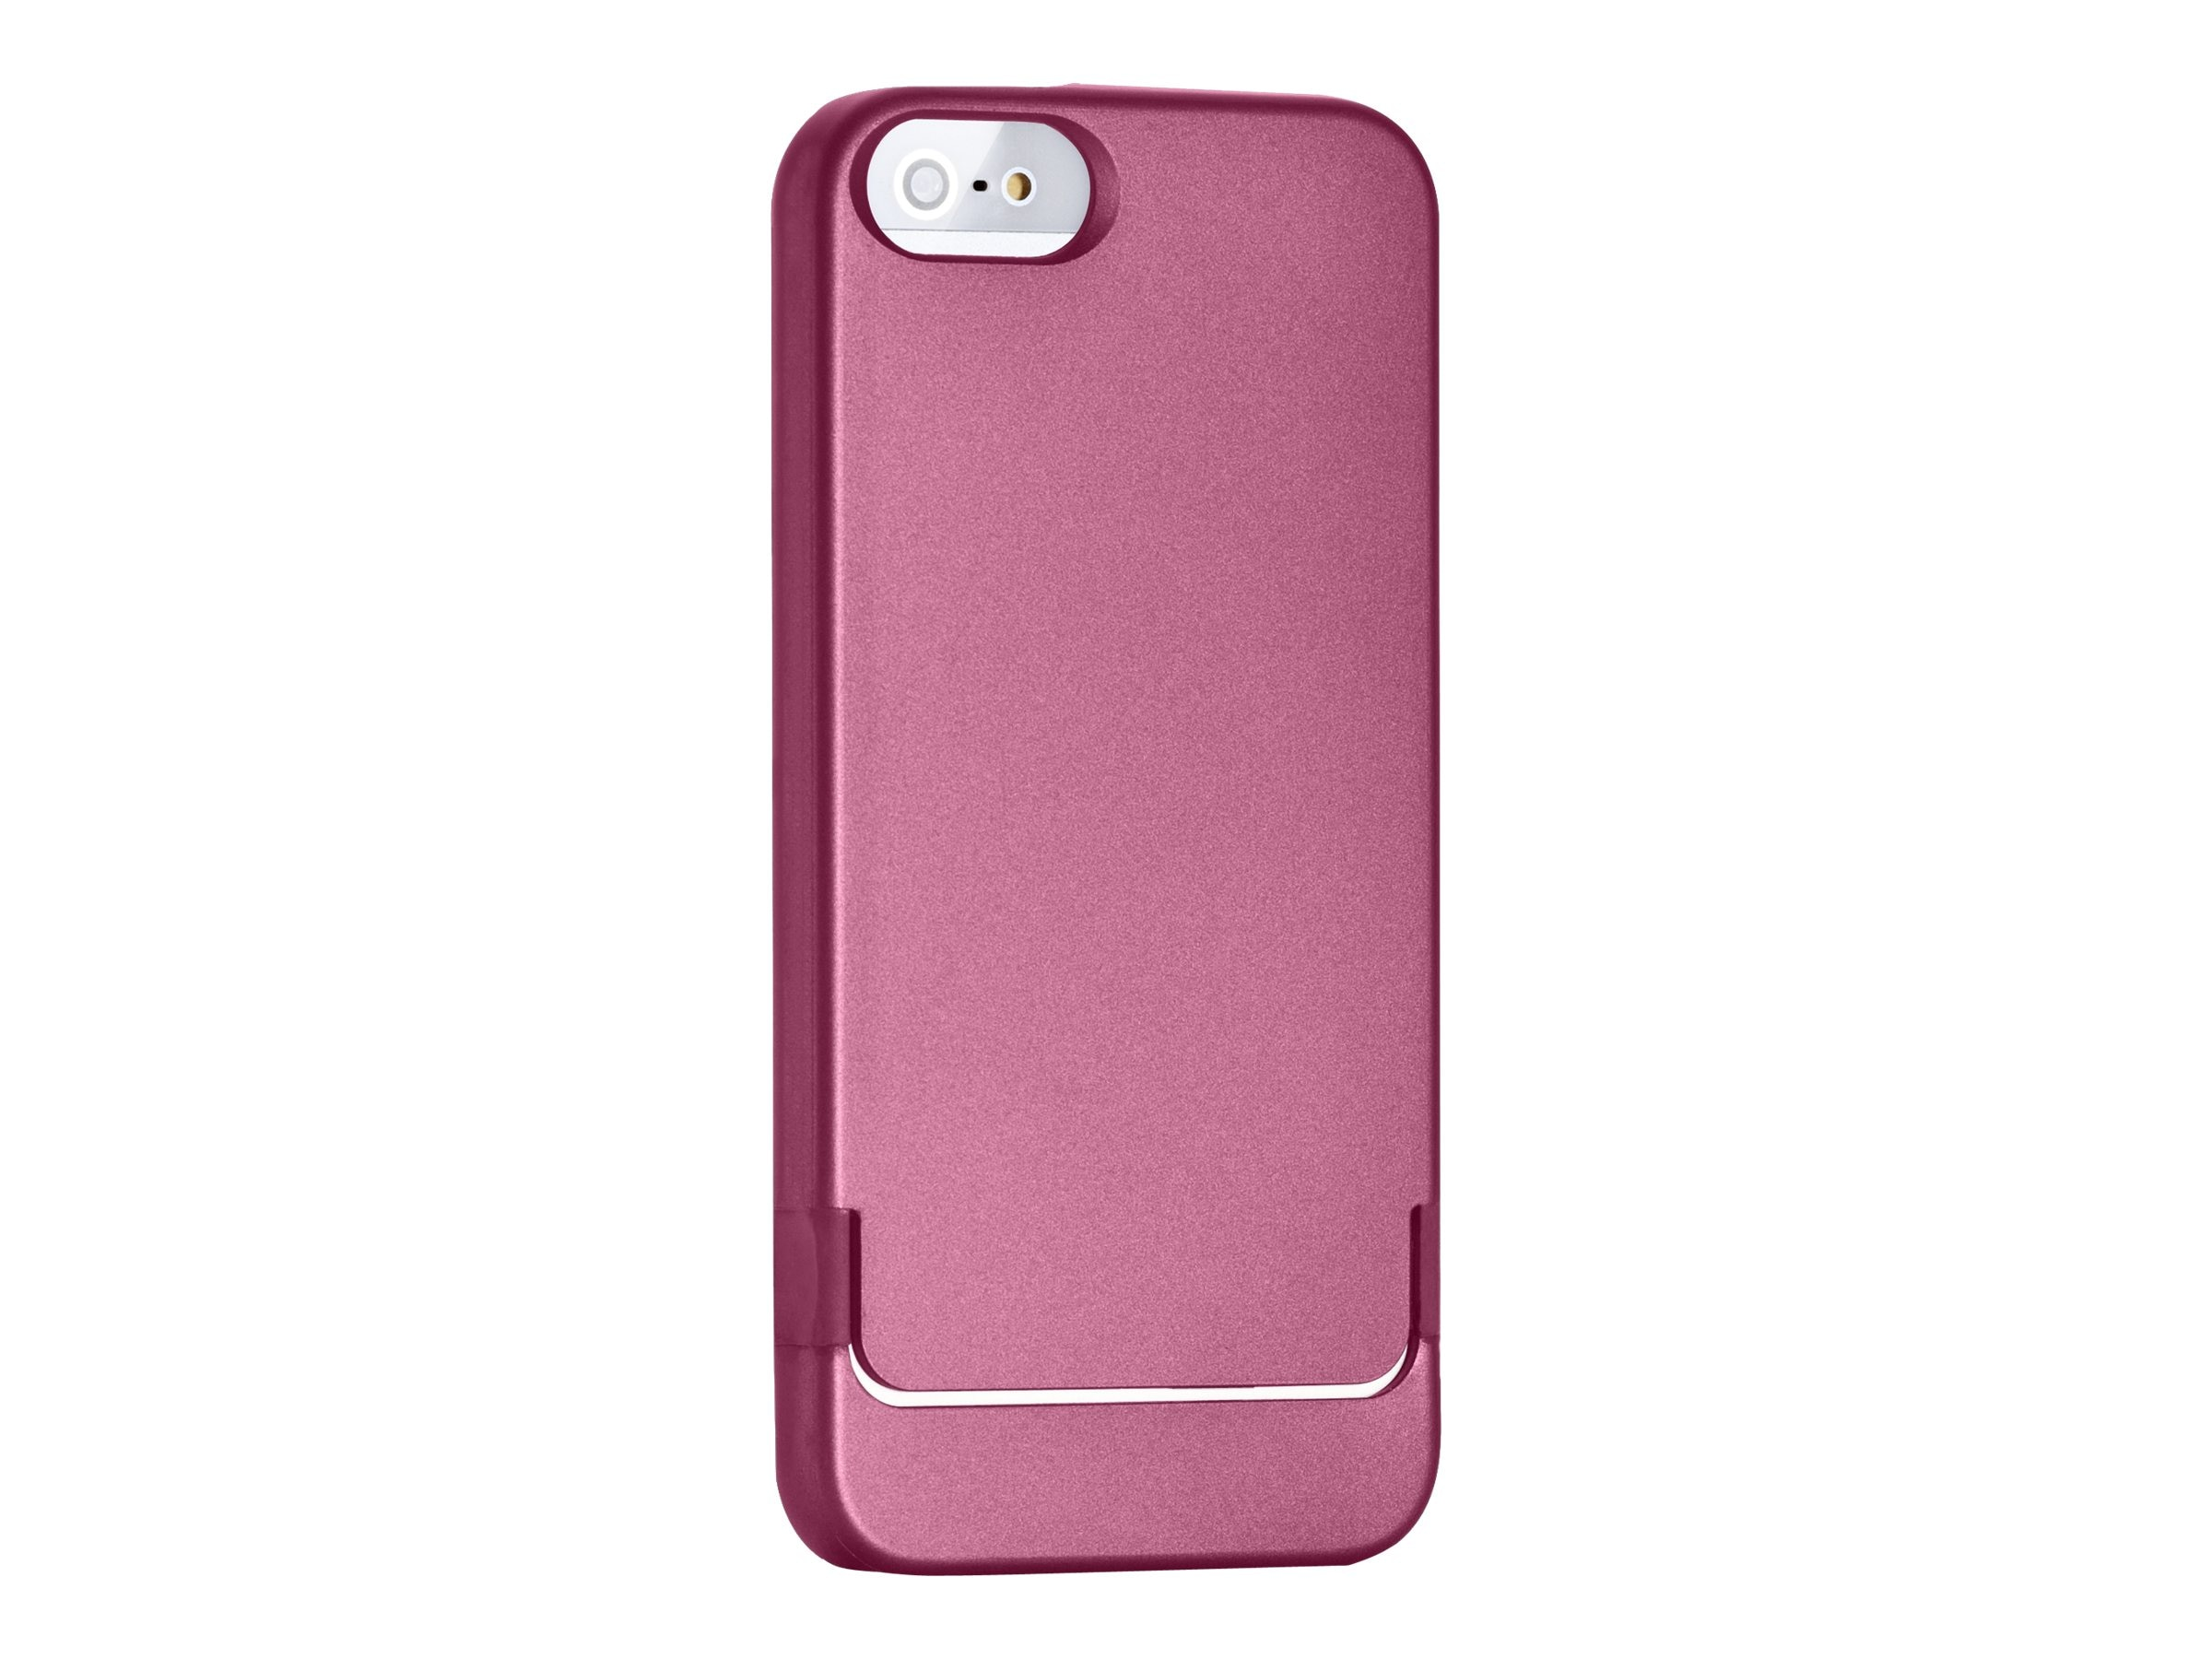 Targus iPhone 5 Slider Case, TFD03301US, 15520658, Carrying Cases - Phones/PDAs